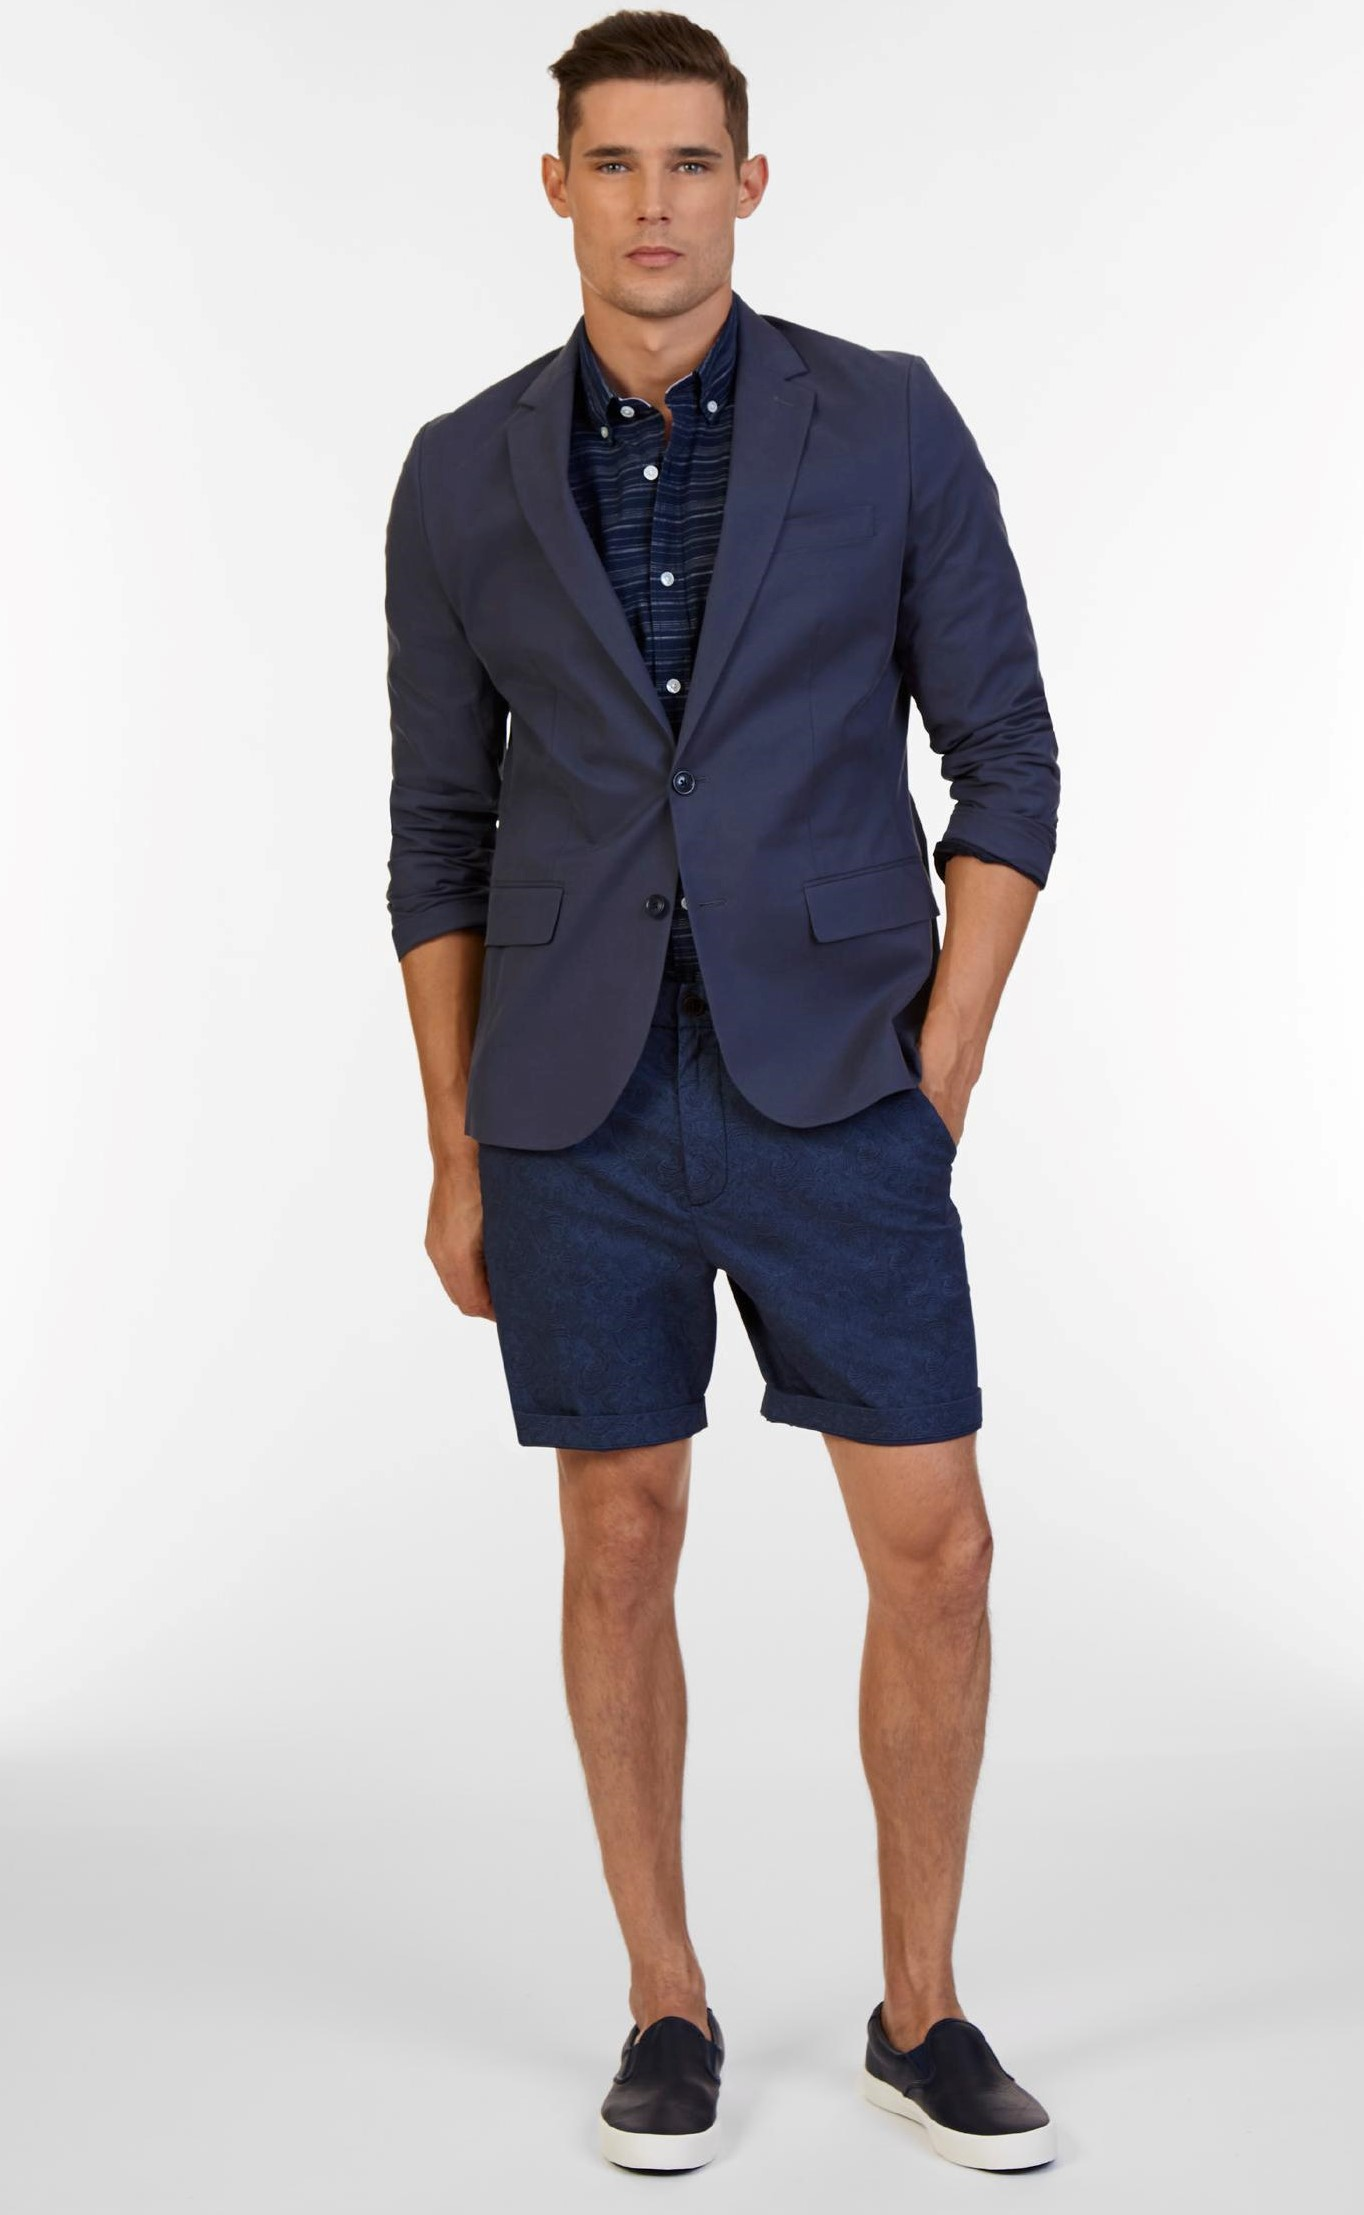 Guy Guide What To Wear For Beach Weddings Pinoy Guy Guide